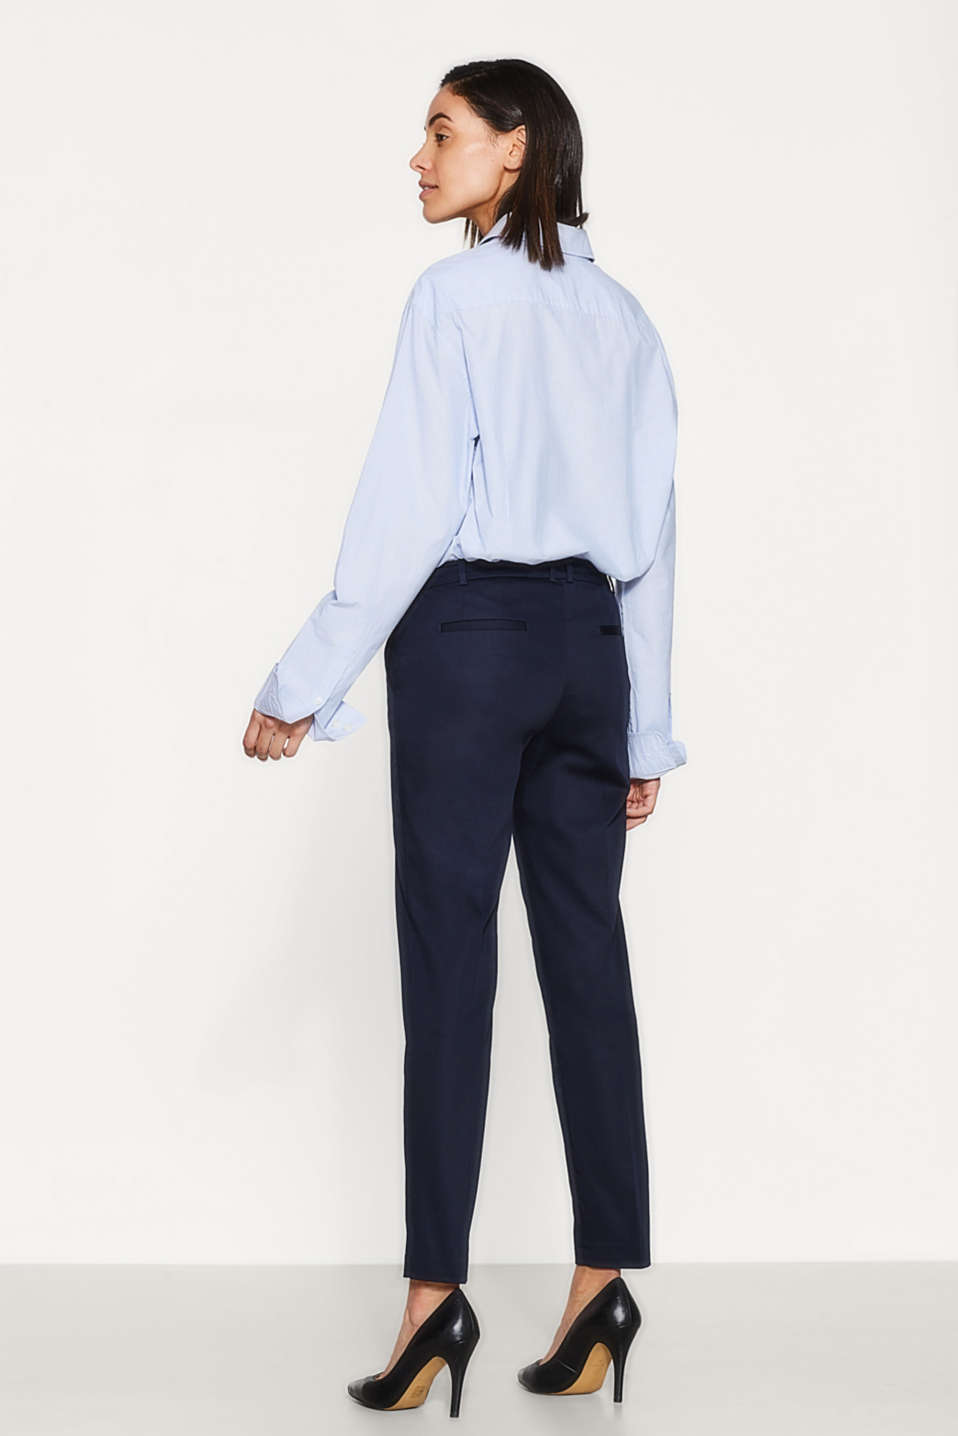 SOFT SATIN Mix + match trousers, NAVY, detail image number 3